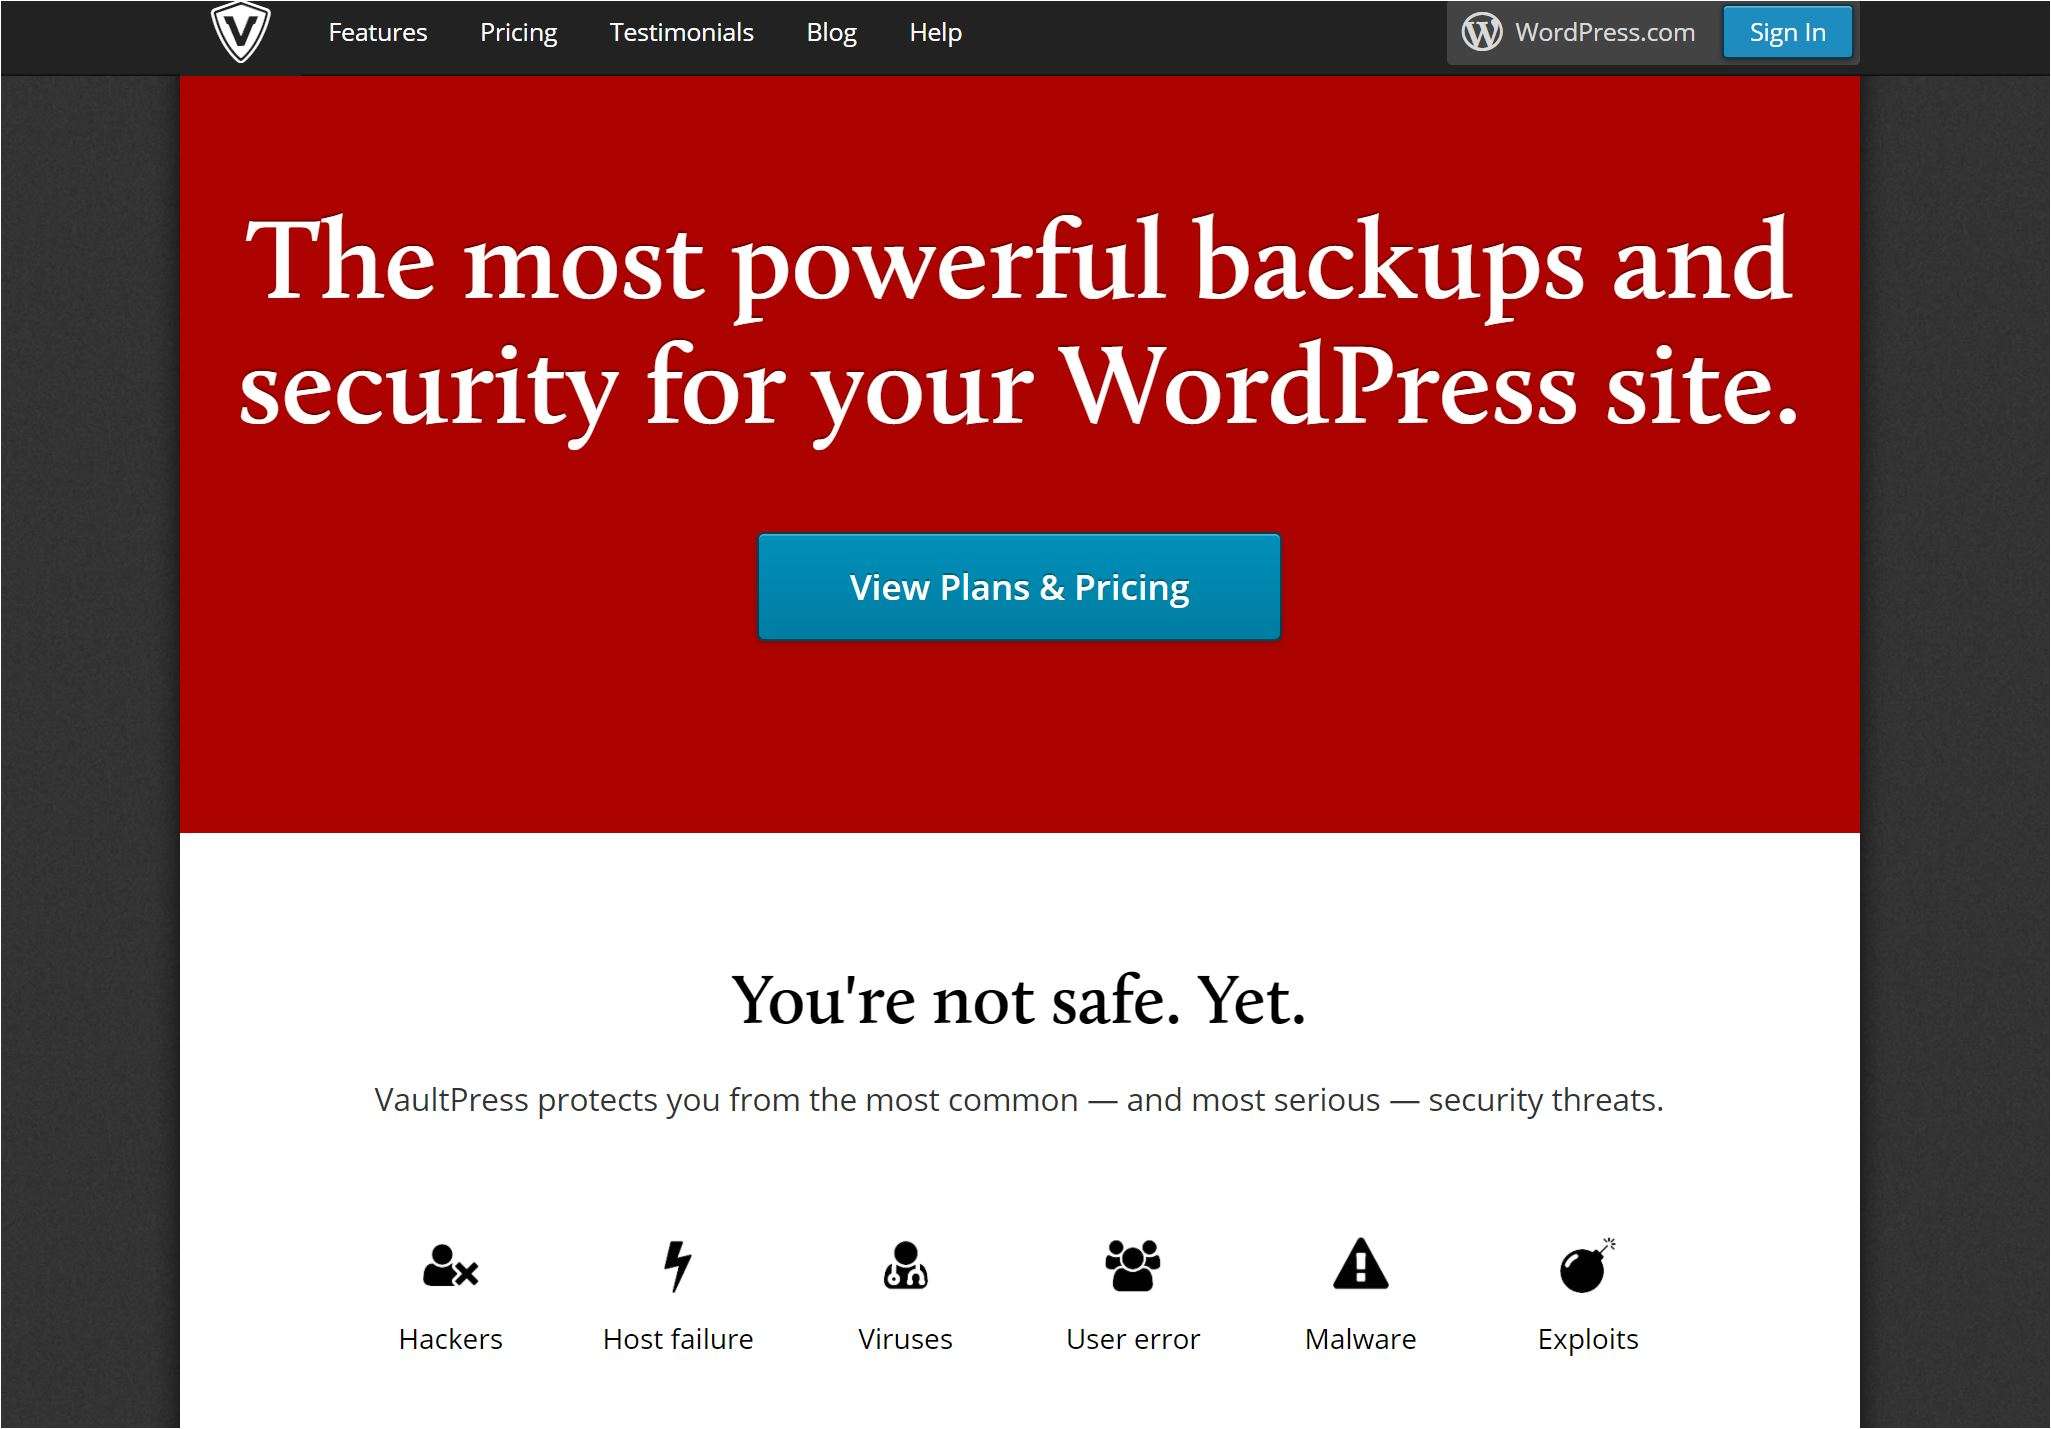 VaultPress: the most powerful backups and security for your WordPress site.